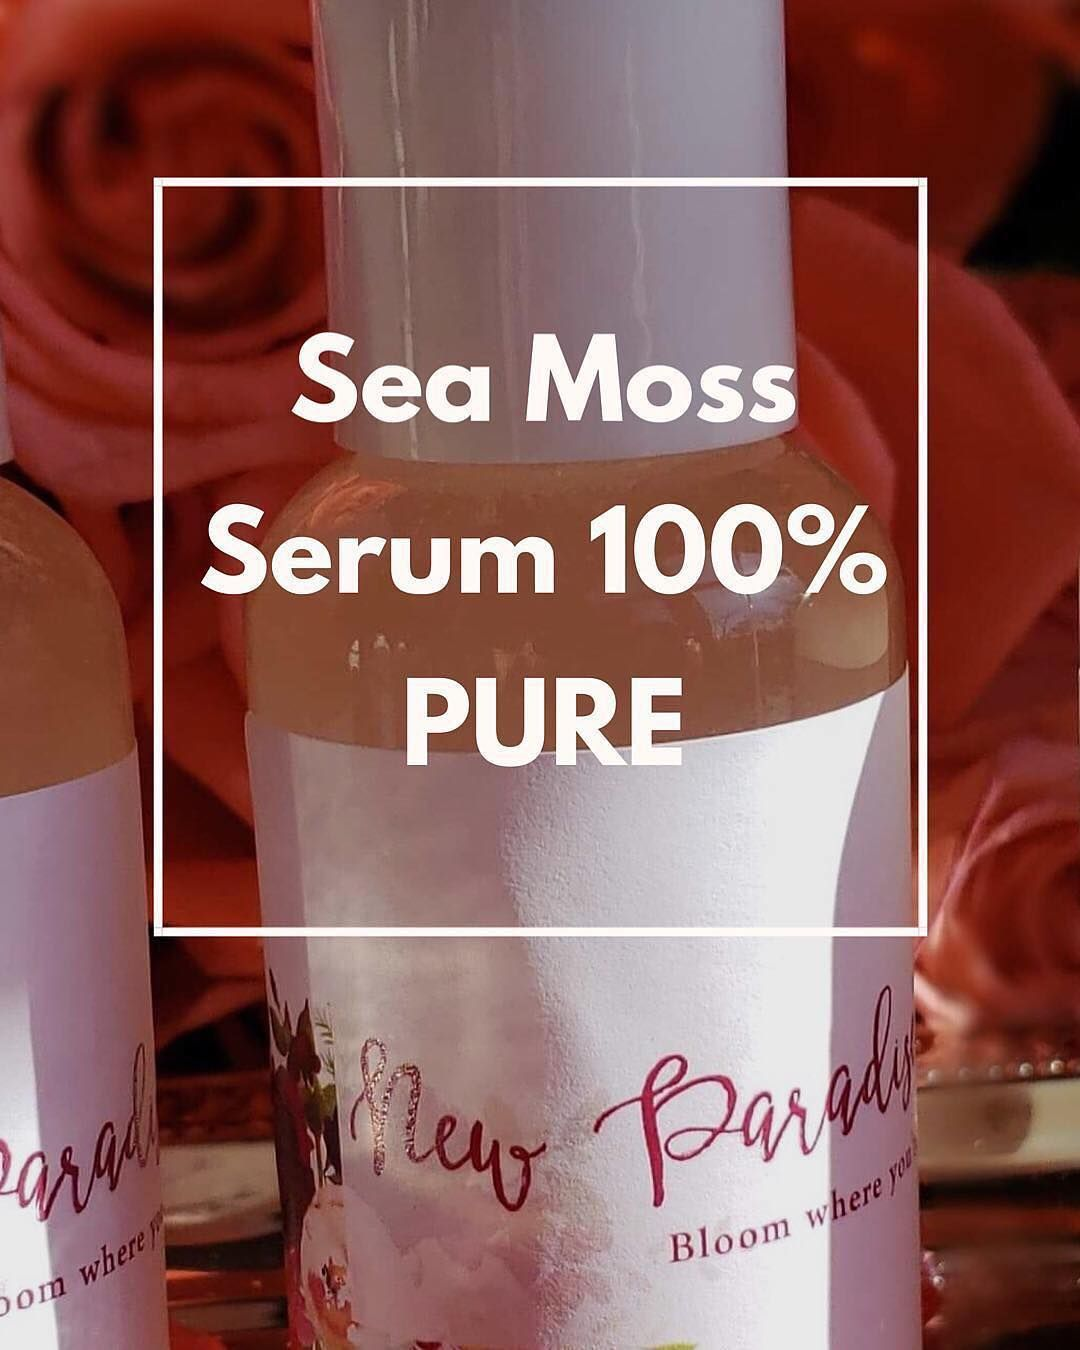 Sea Moss Skin Serum is our STAR product it's 100% concentrated pure col... Sea Moss Skin Serum is our STAR product it's 100% concentrated pure col...,